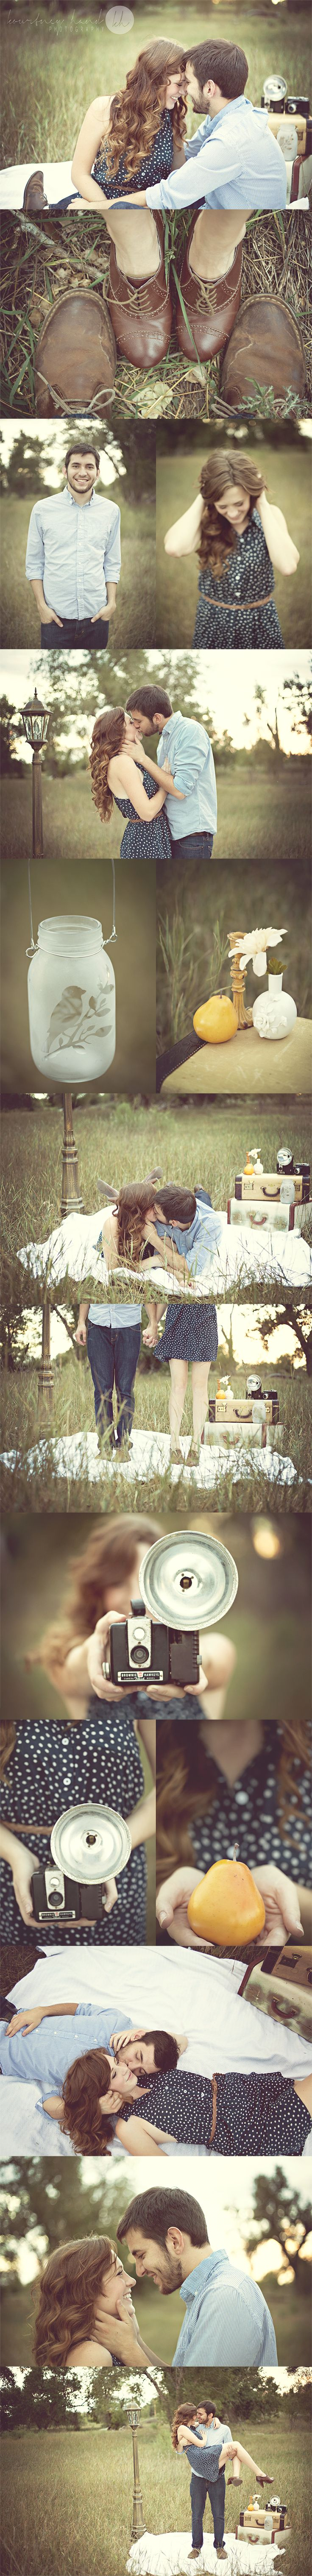 Vintage Inspired Couple Shoot | Kourtney Hand Photography  I wish I could have a relationship like this